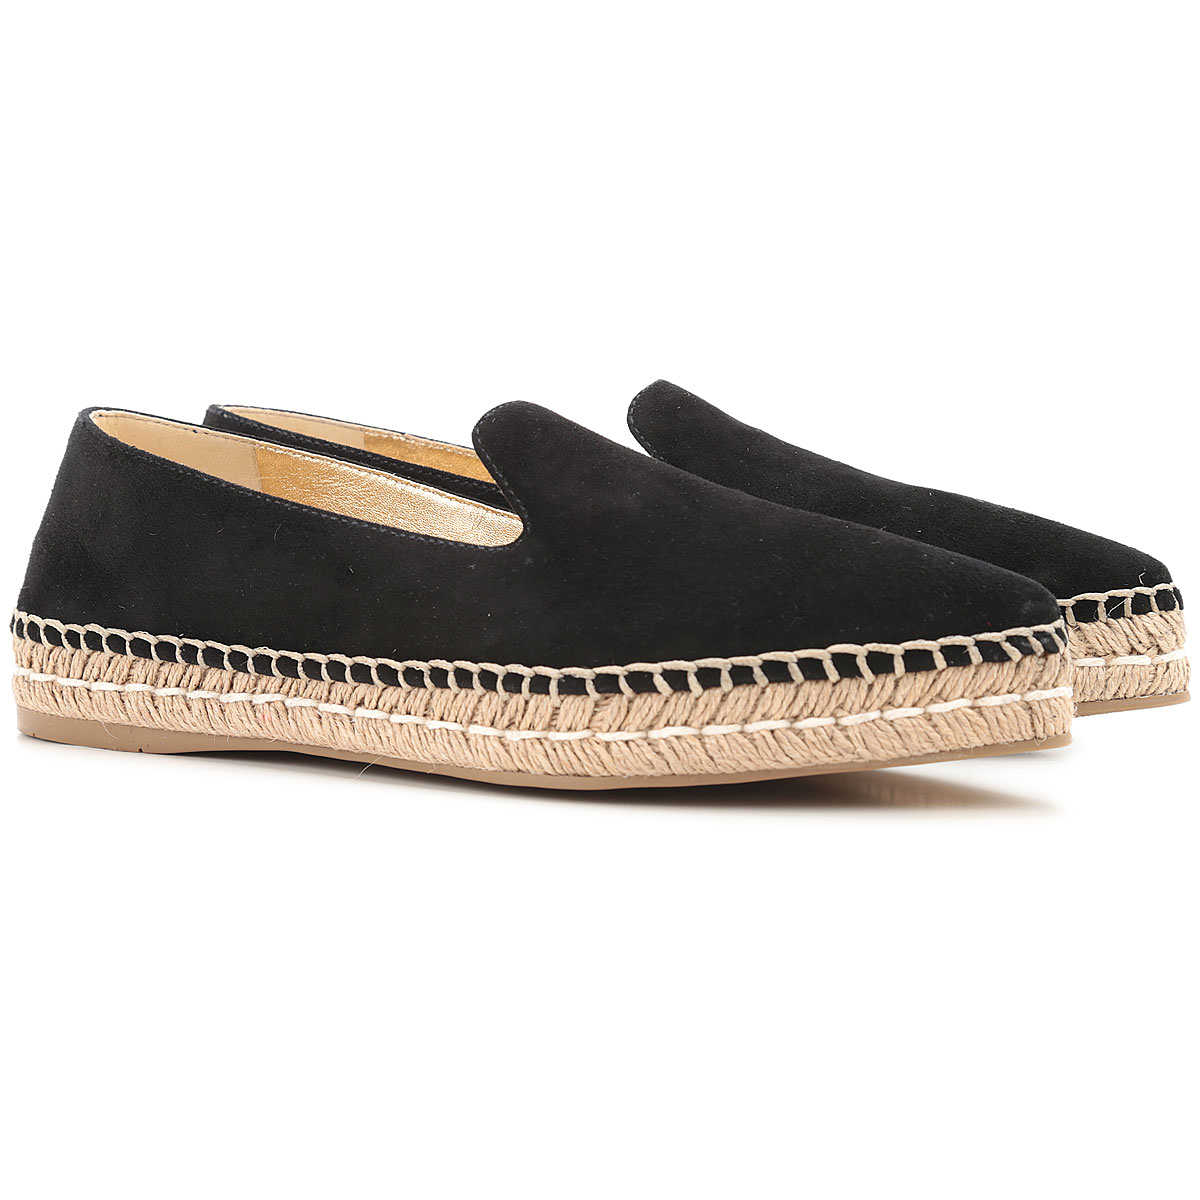 Prada Loafers for Women On Sale in Outlet Black UK - GOOFASH